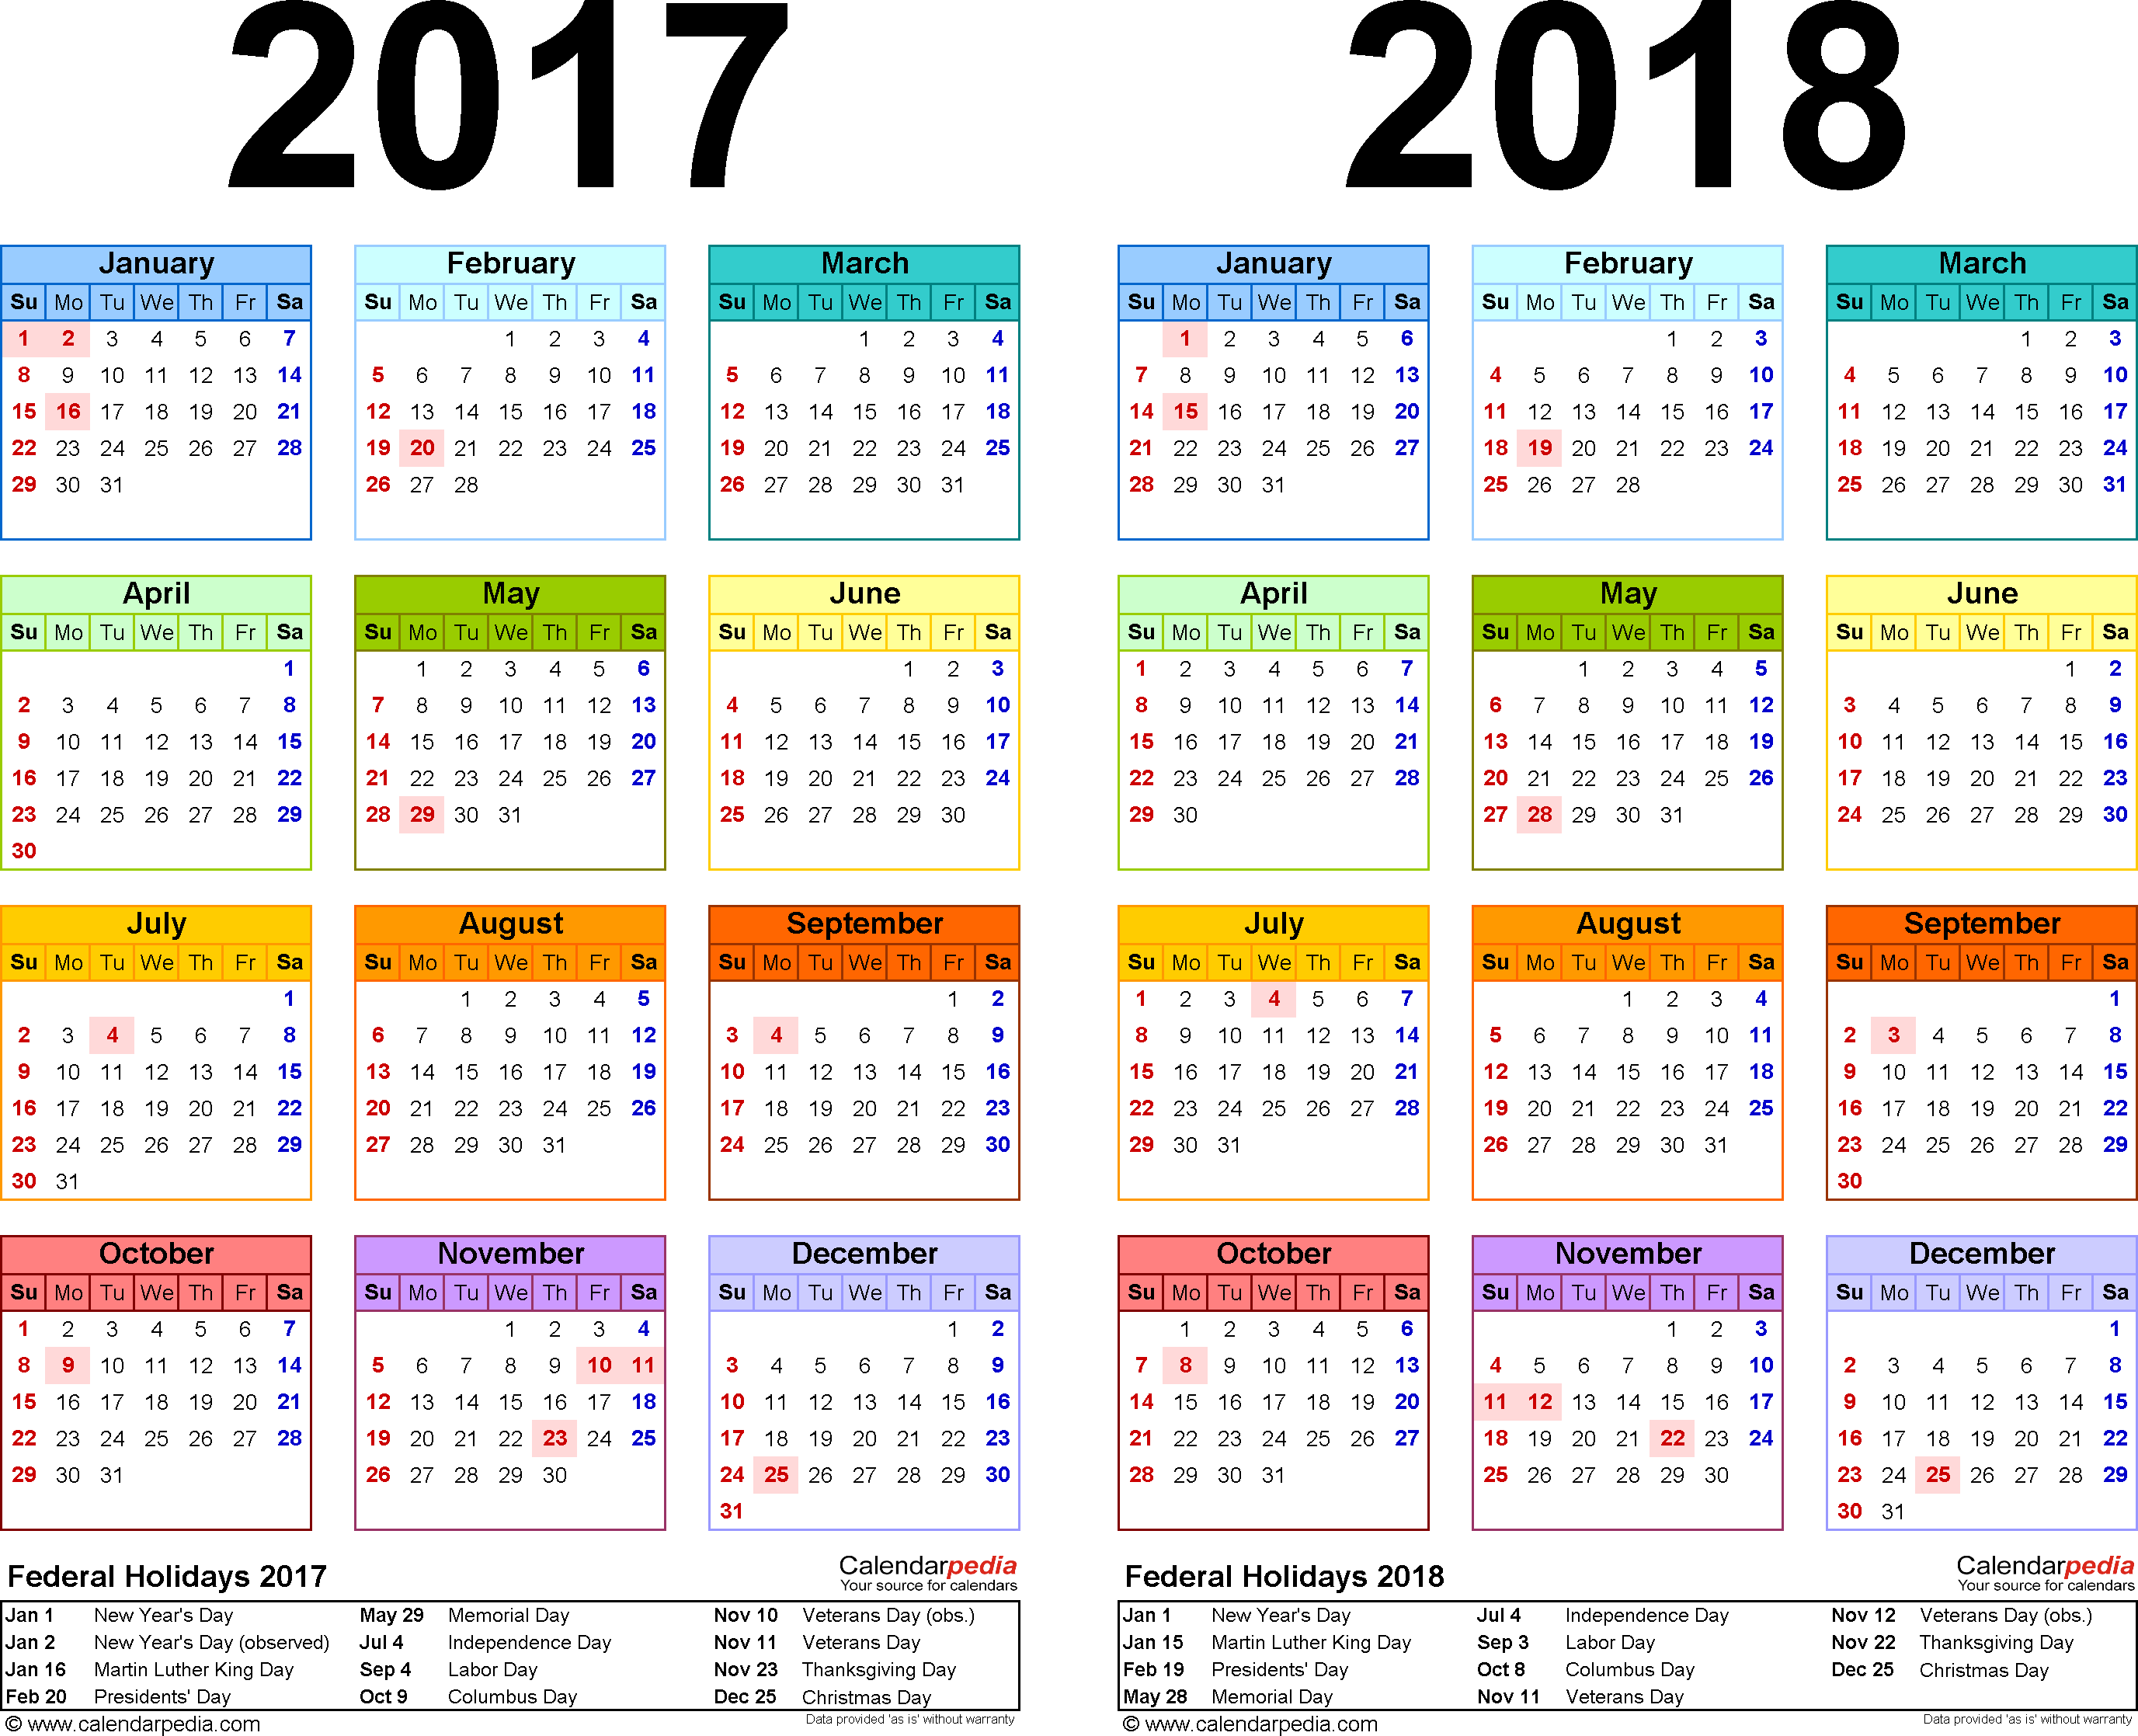 Printable Calendars for a More Floral 2017 - FTD.com